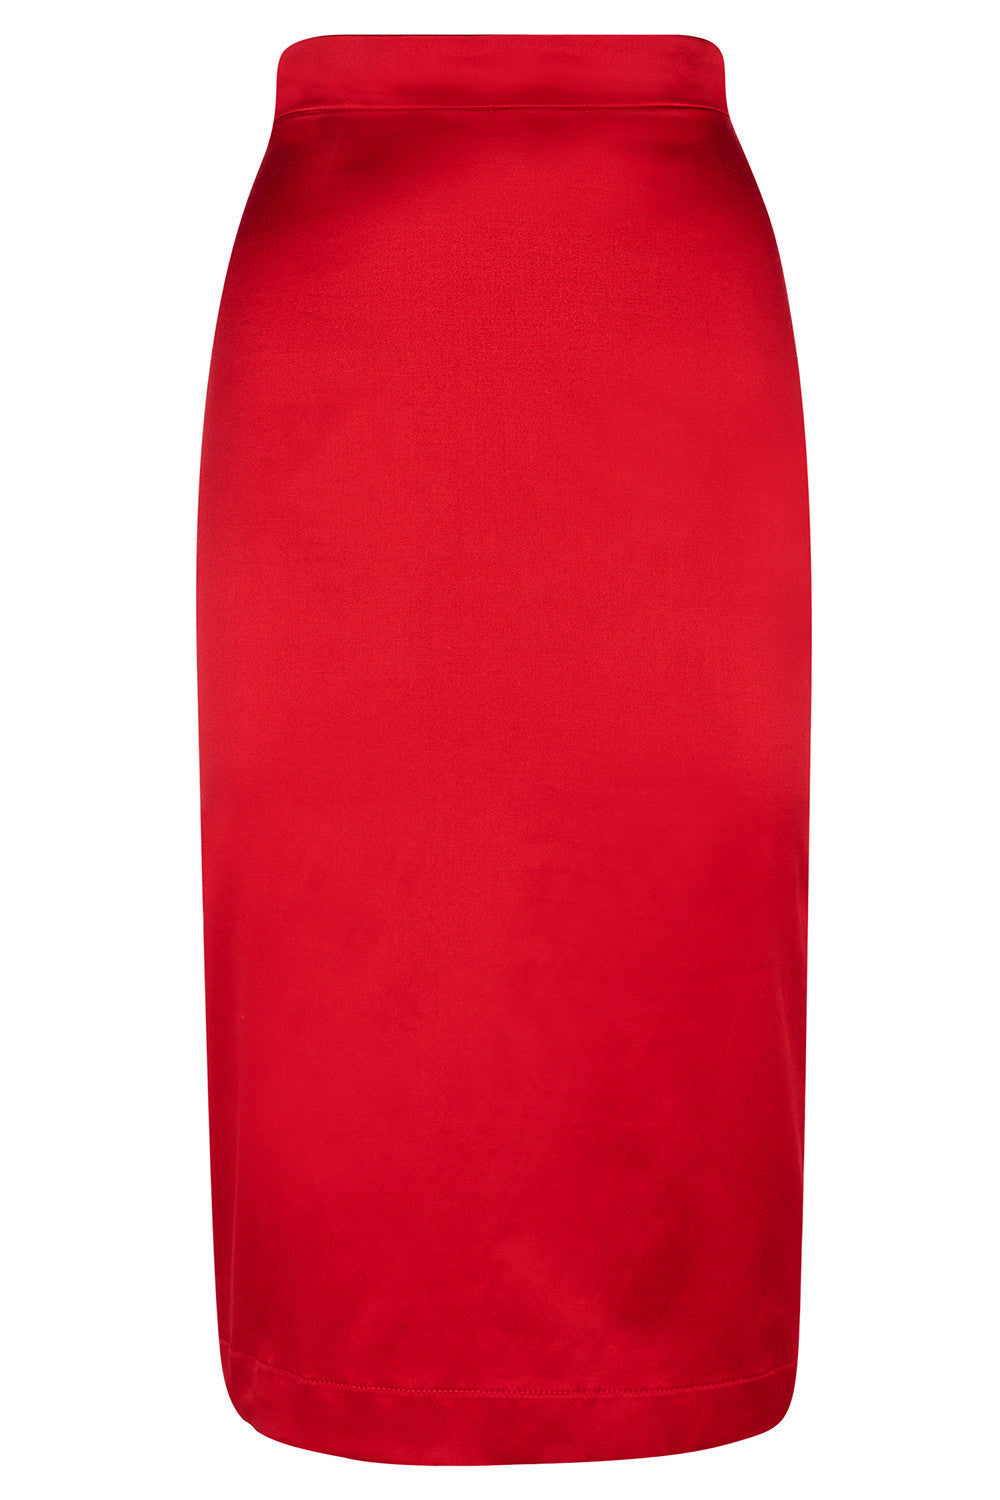 The Wiggle Skirt - Red